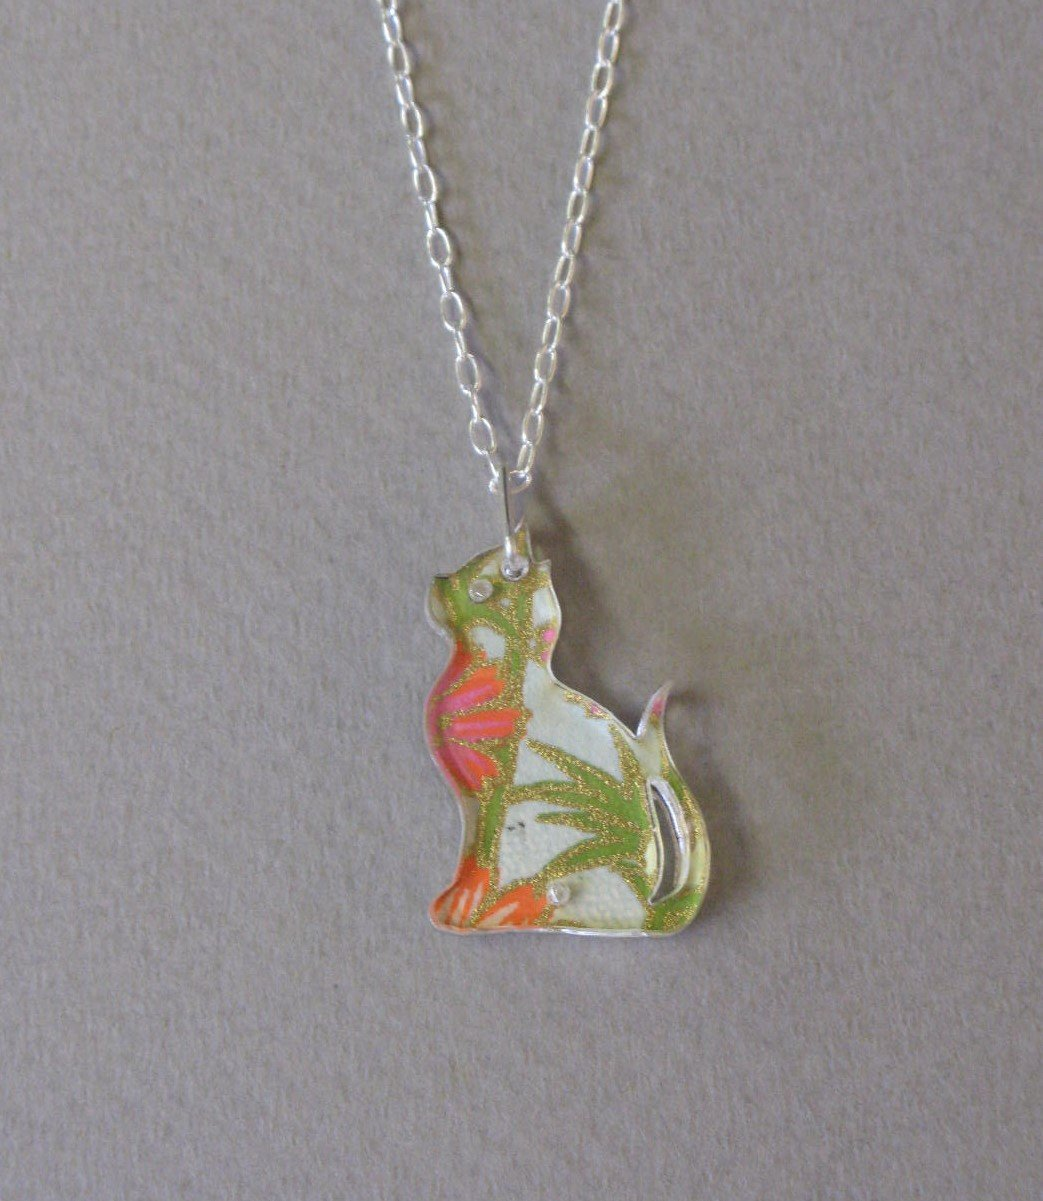 Sitting Cat - Orange, Blue & Pink, Green Necklace. Reversible Design by Sophie Court